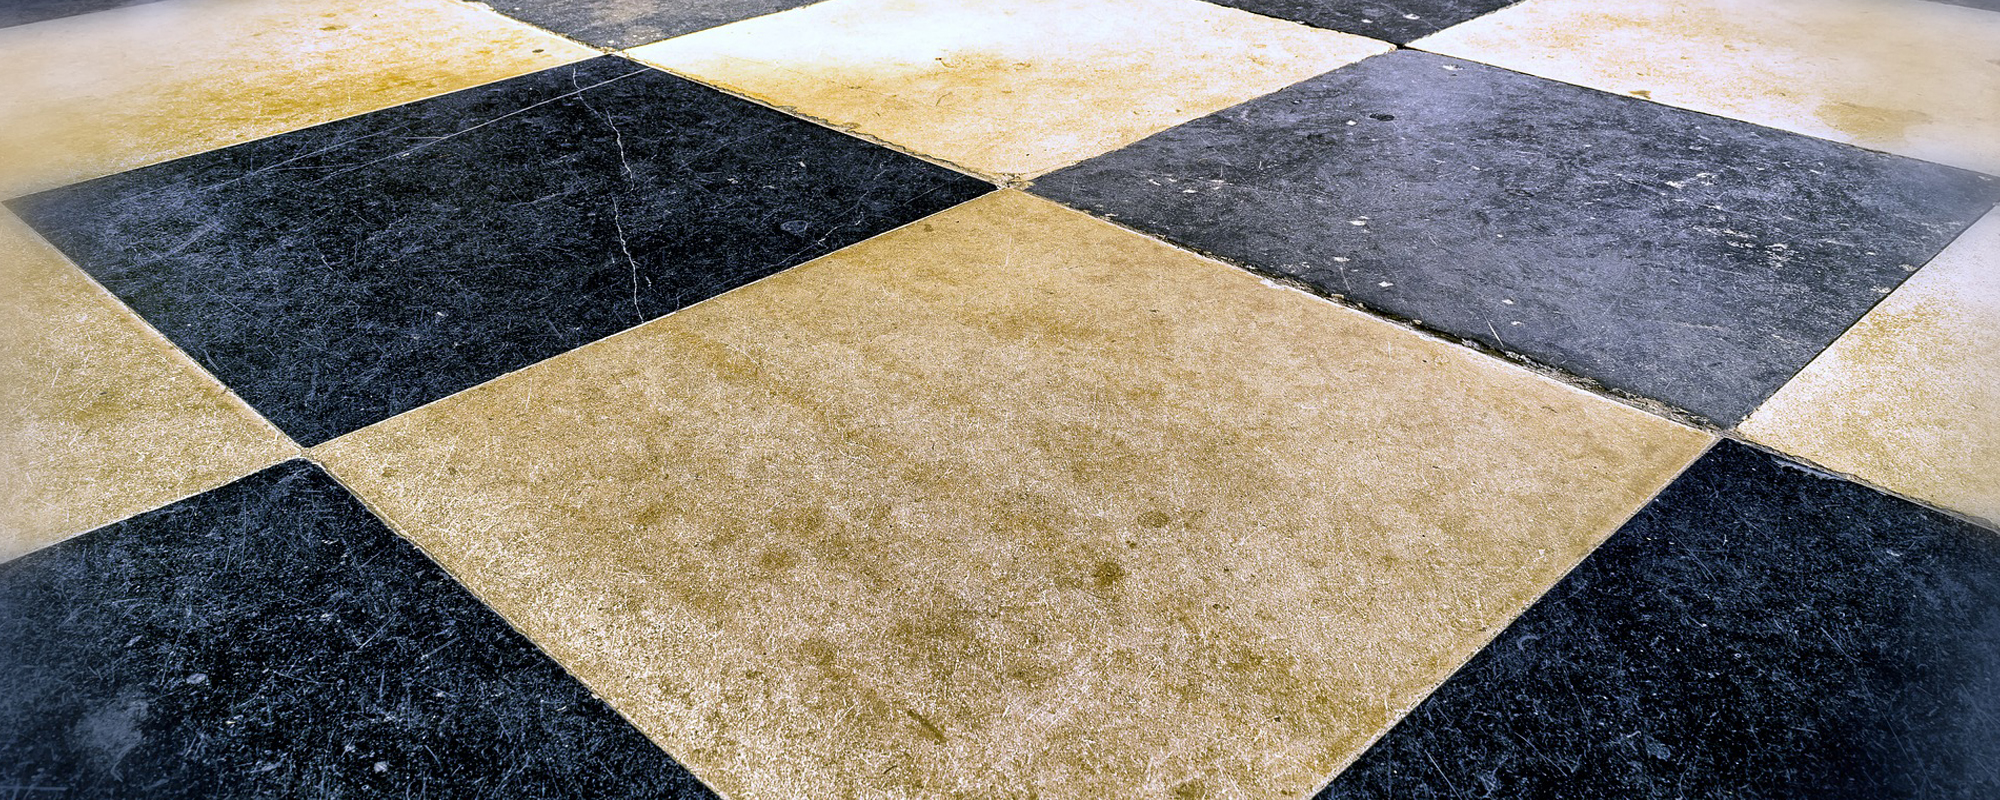 Tiled floor cleaning tips